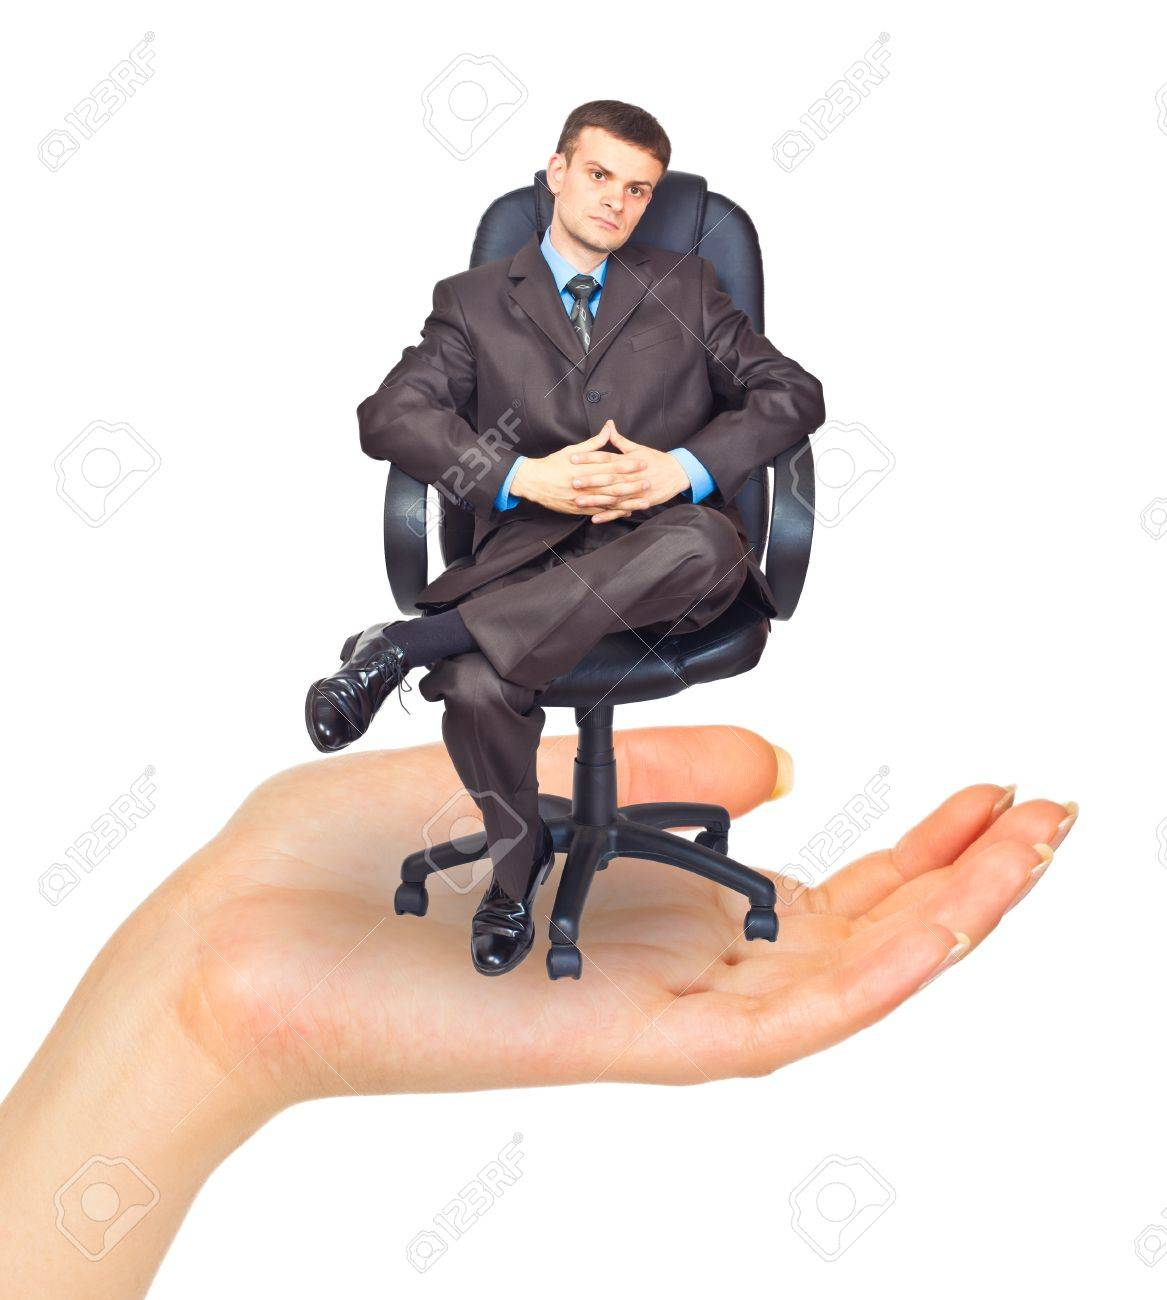 Businessman sitting on chair in hand. Isolated on white background Stock Photo - 10560897